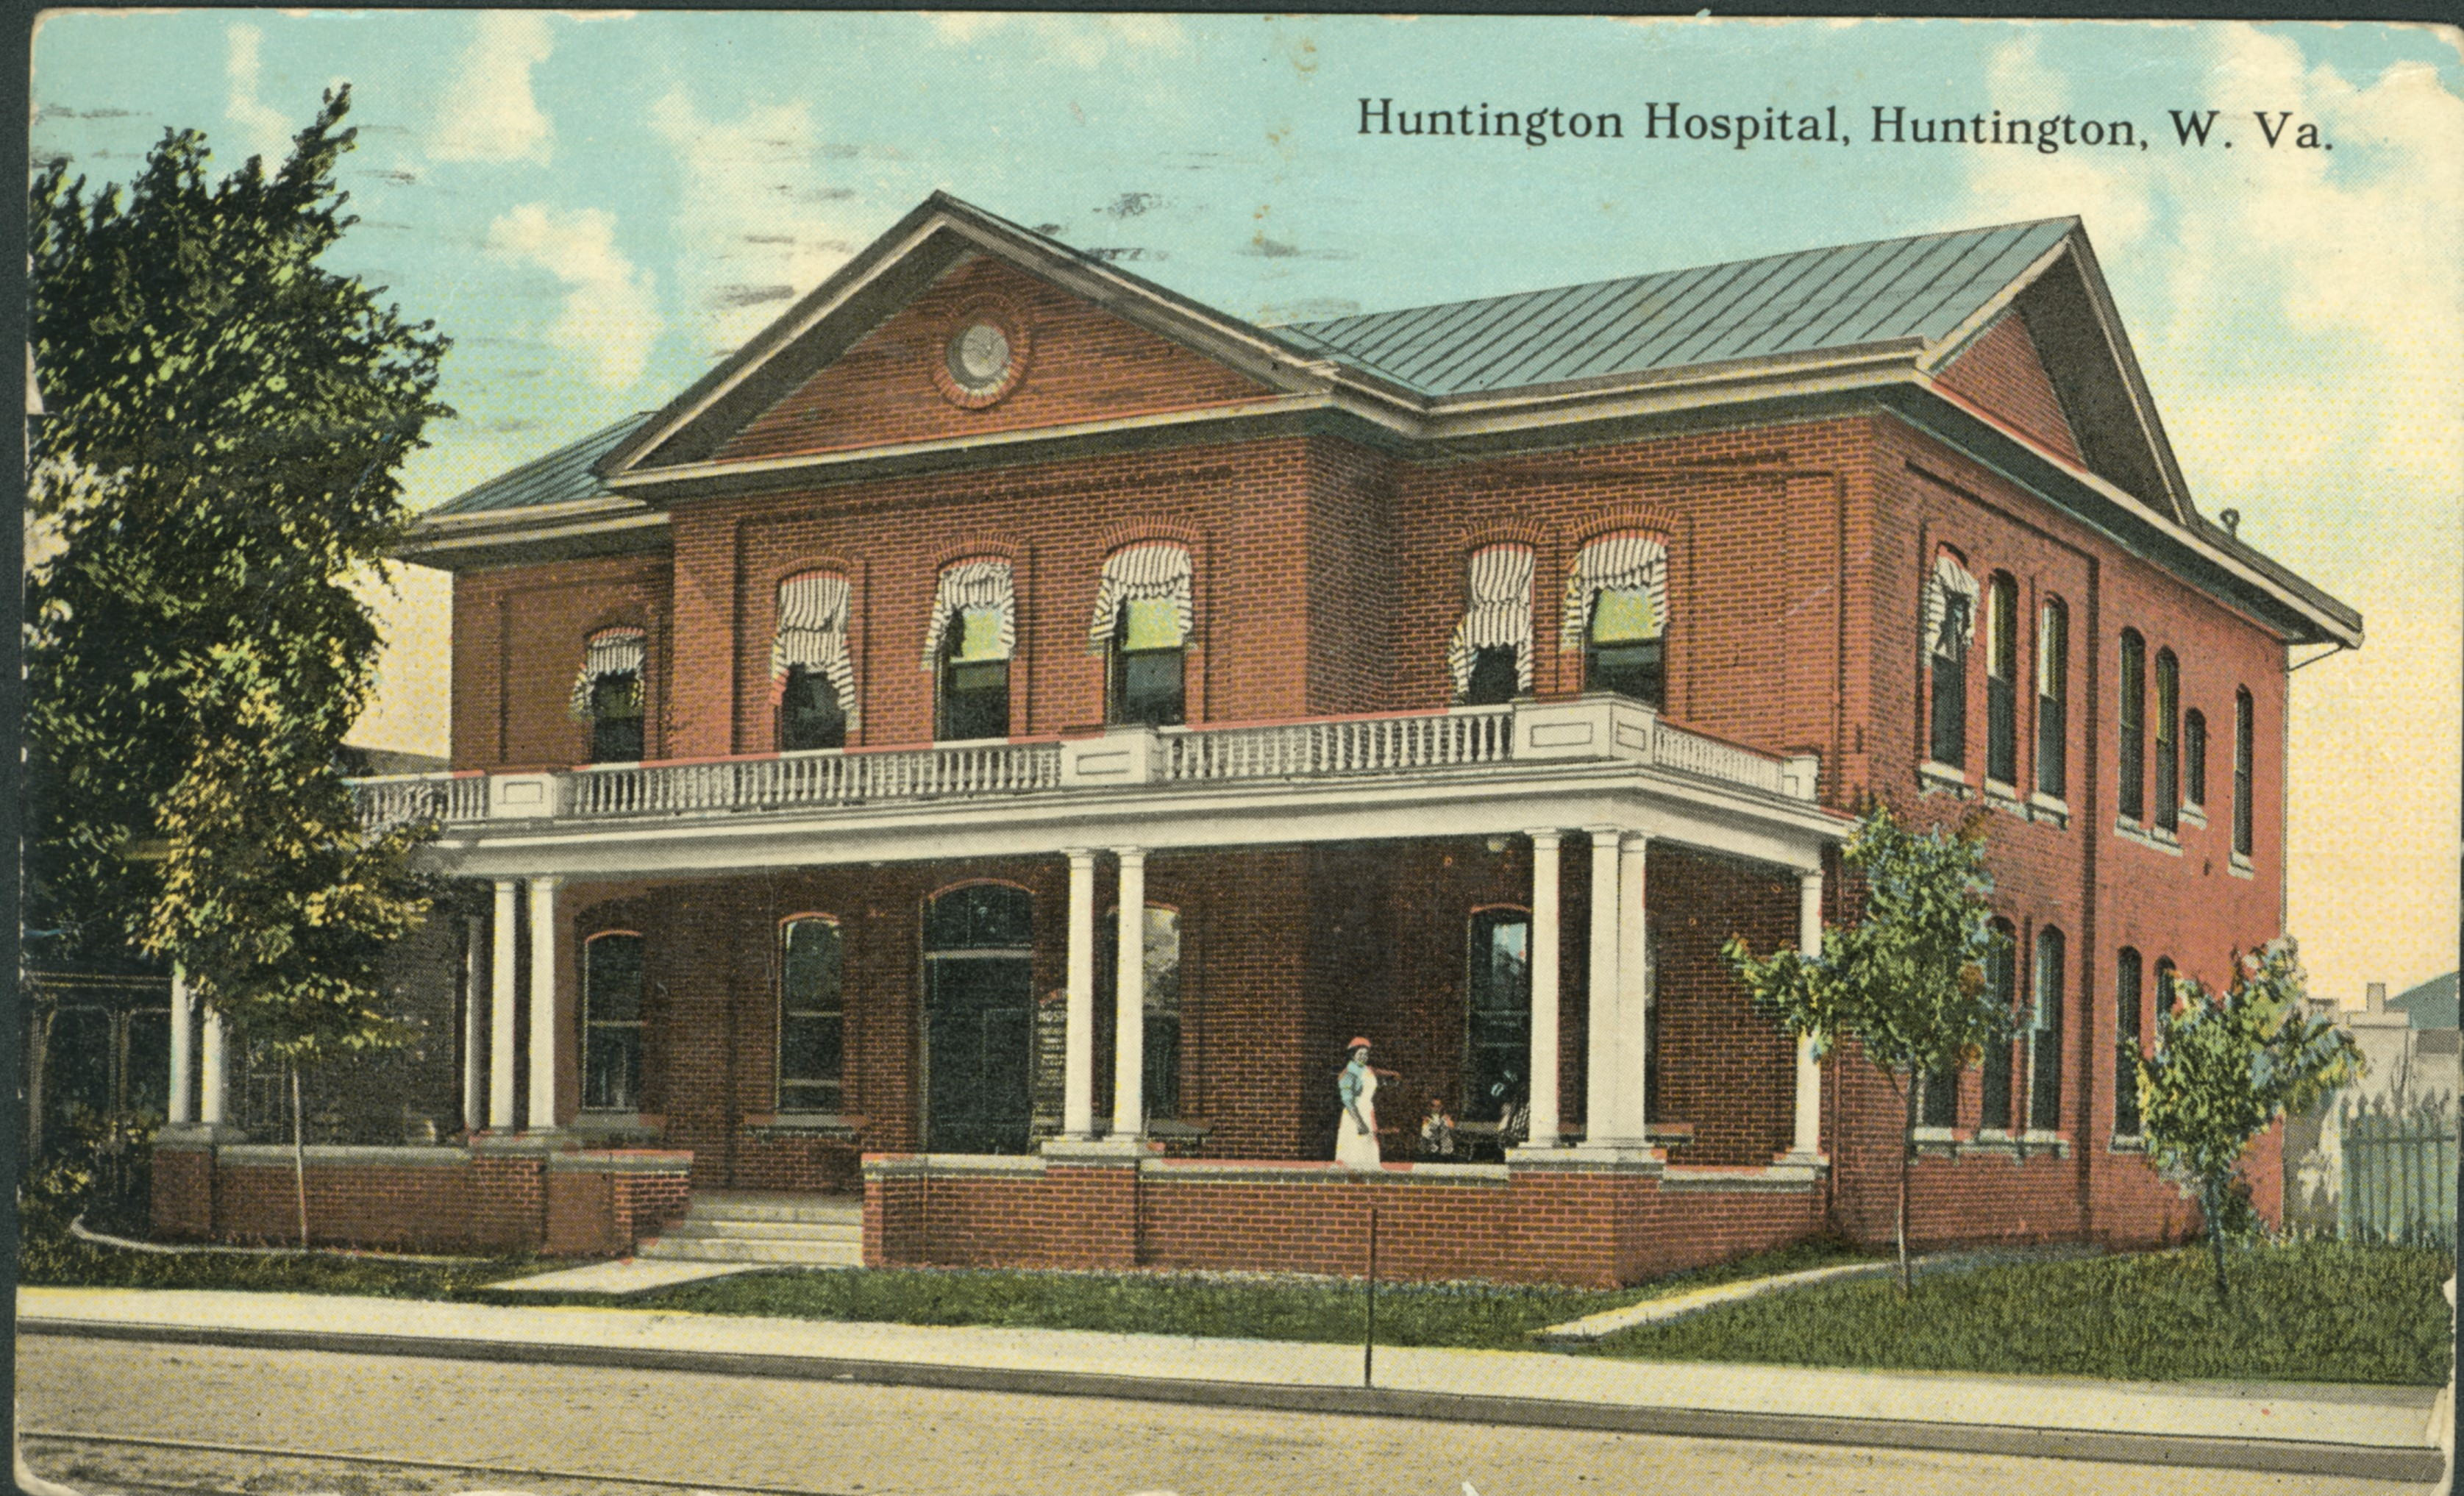 Postcard of Huntington Hospital, notable showing the addition of a porch. Image courtesy of Marshall University Special Collections.